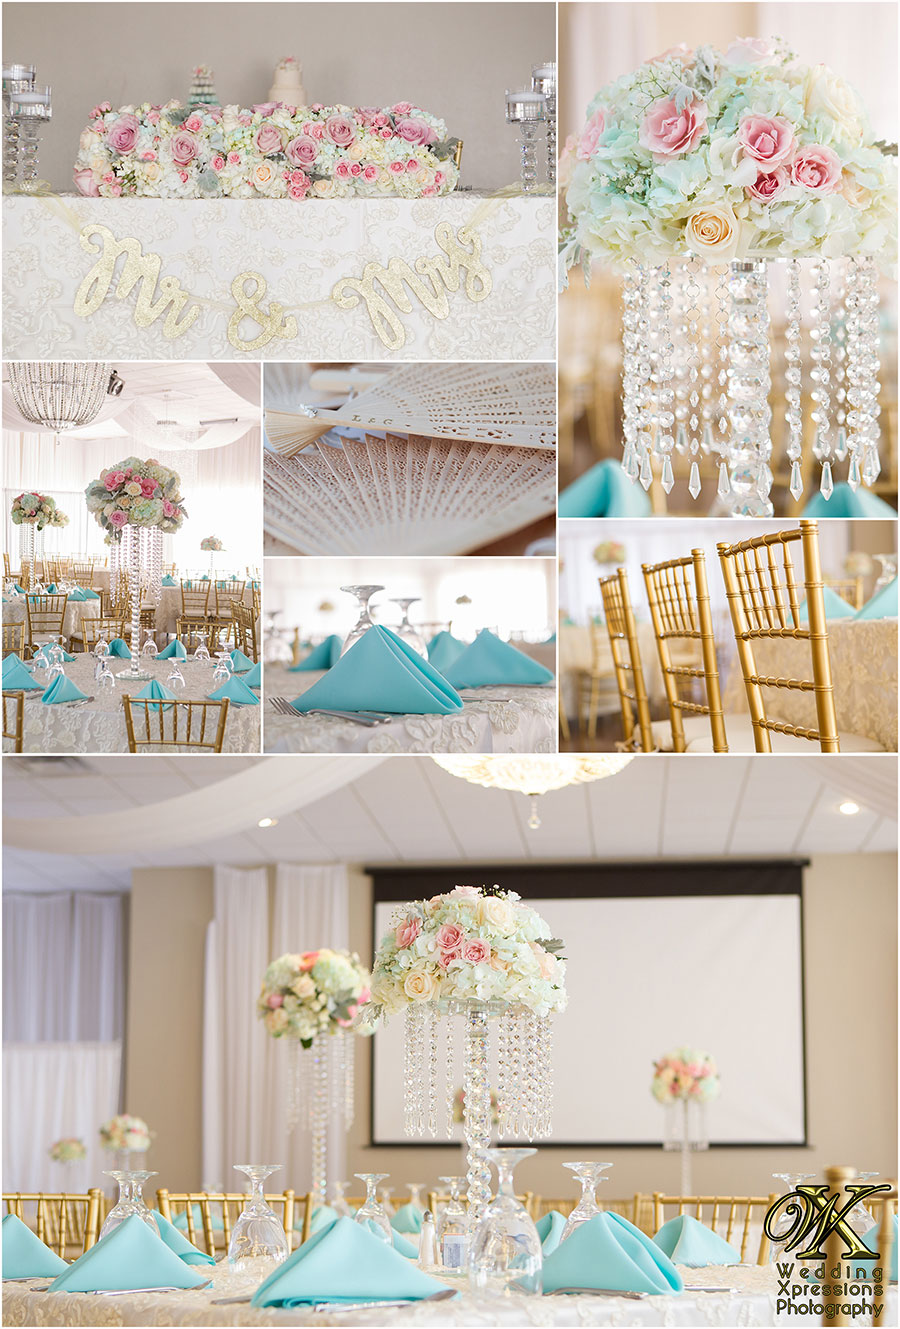 wedding details at Grace Gardens